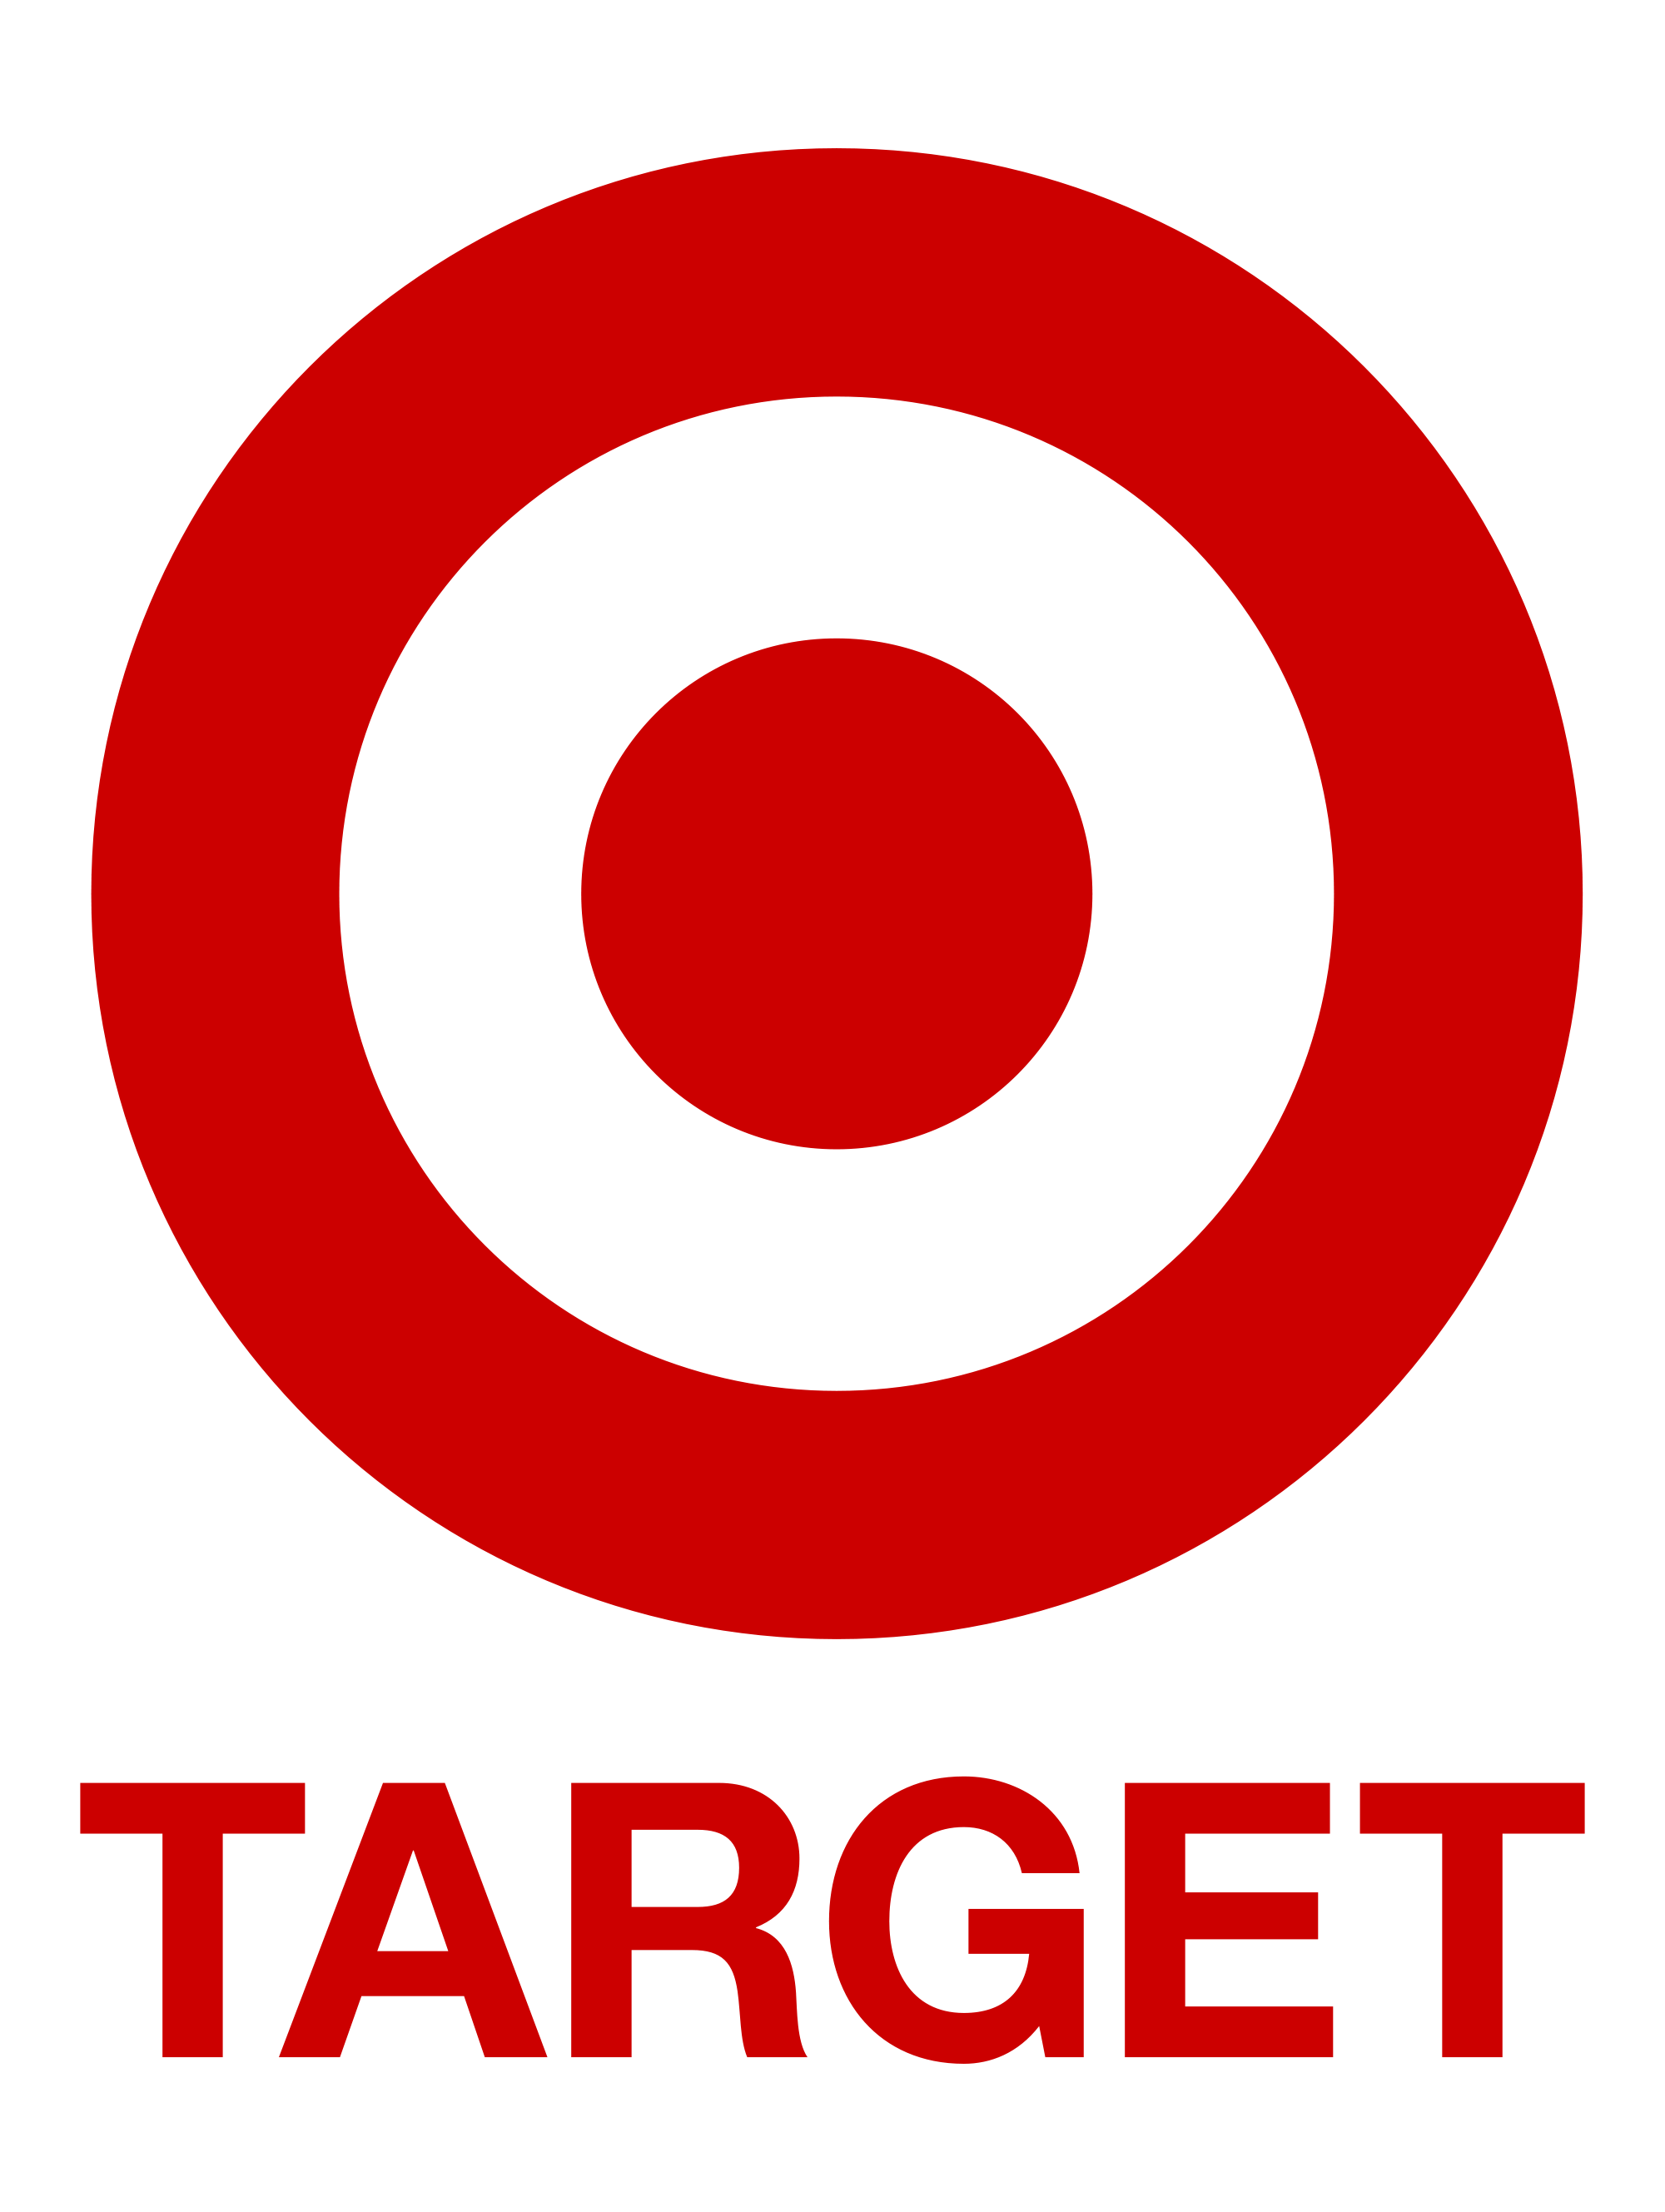 Focus clipart board target. Logo google search the